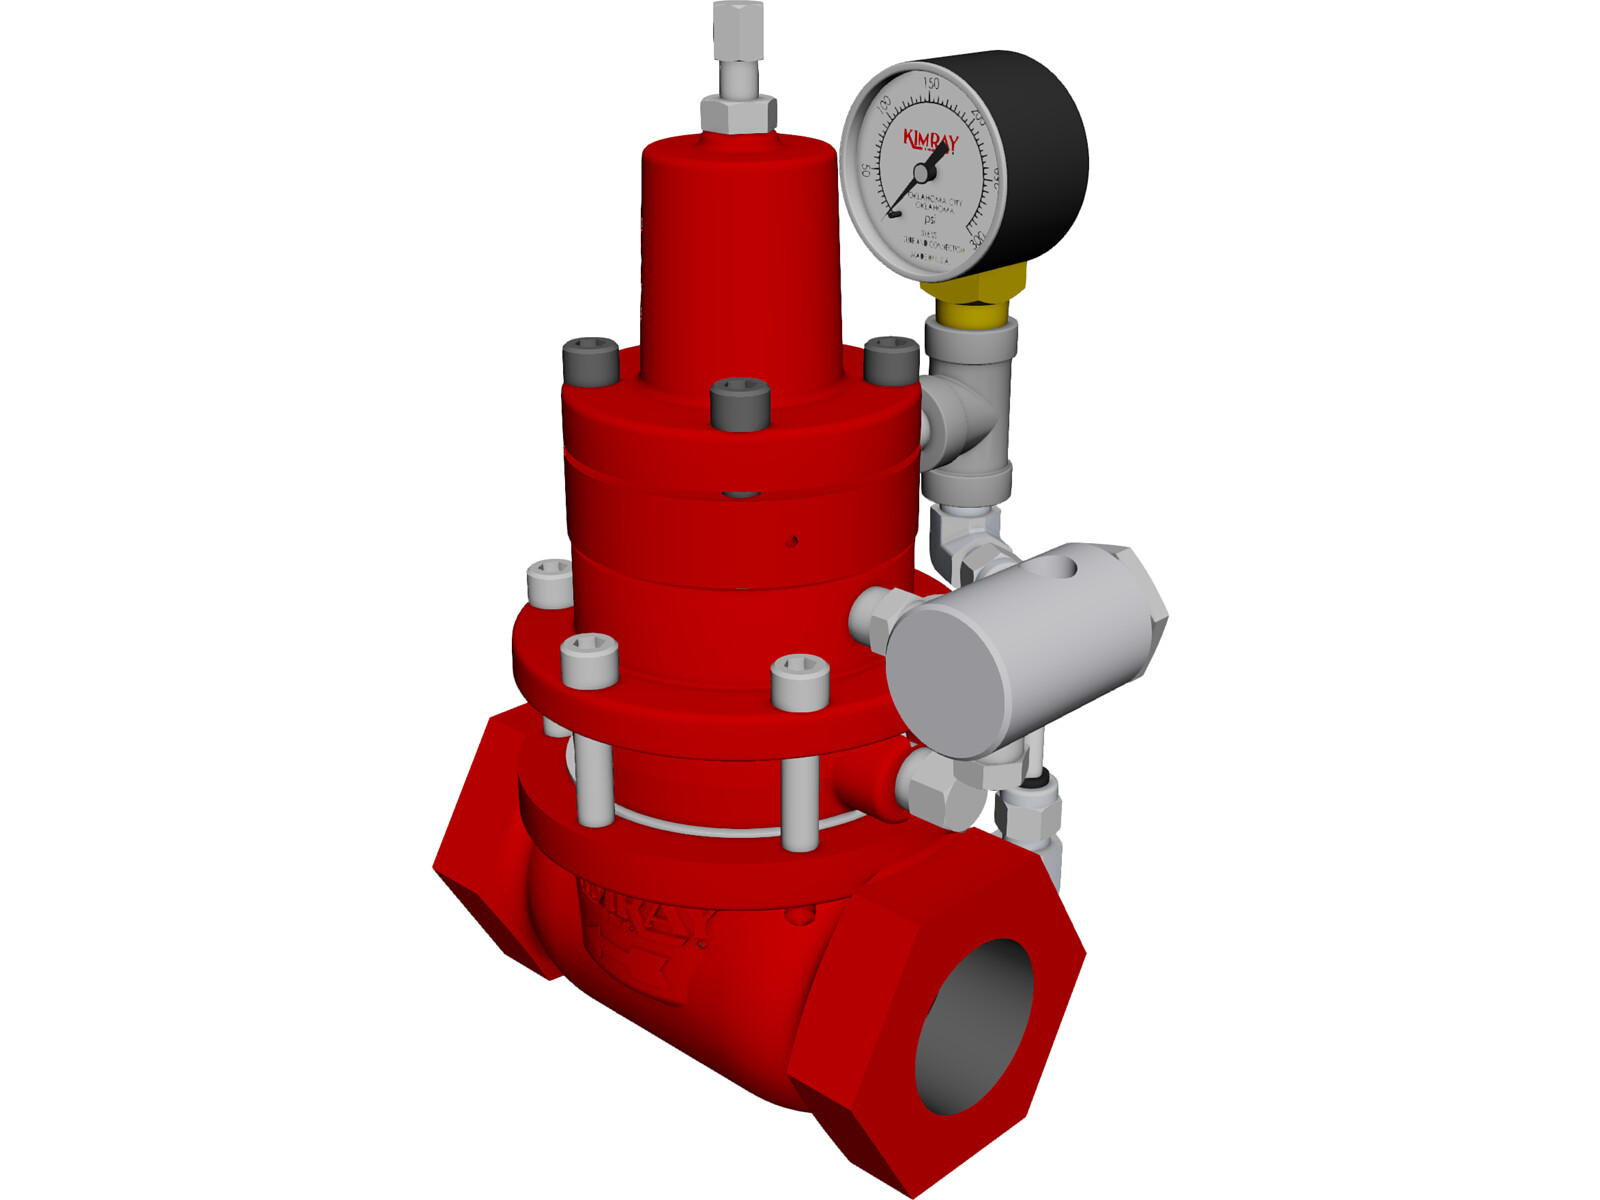 Kimray Pressure Regulator 3D Model